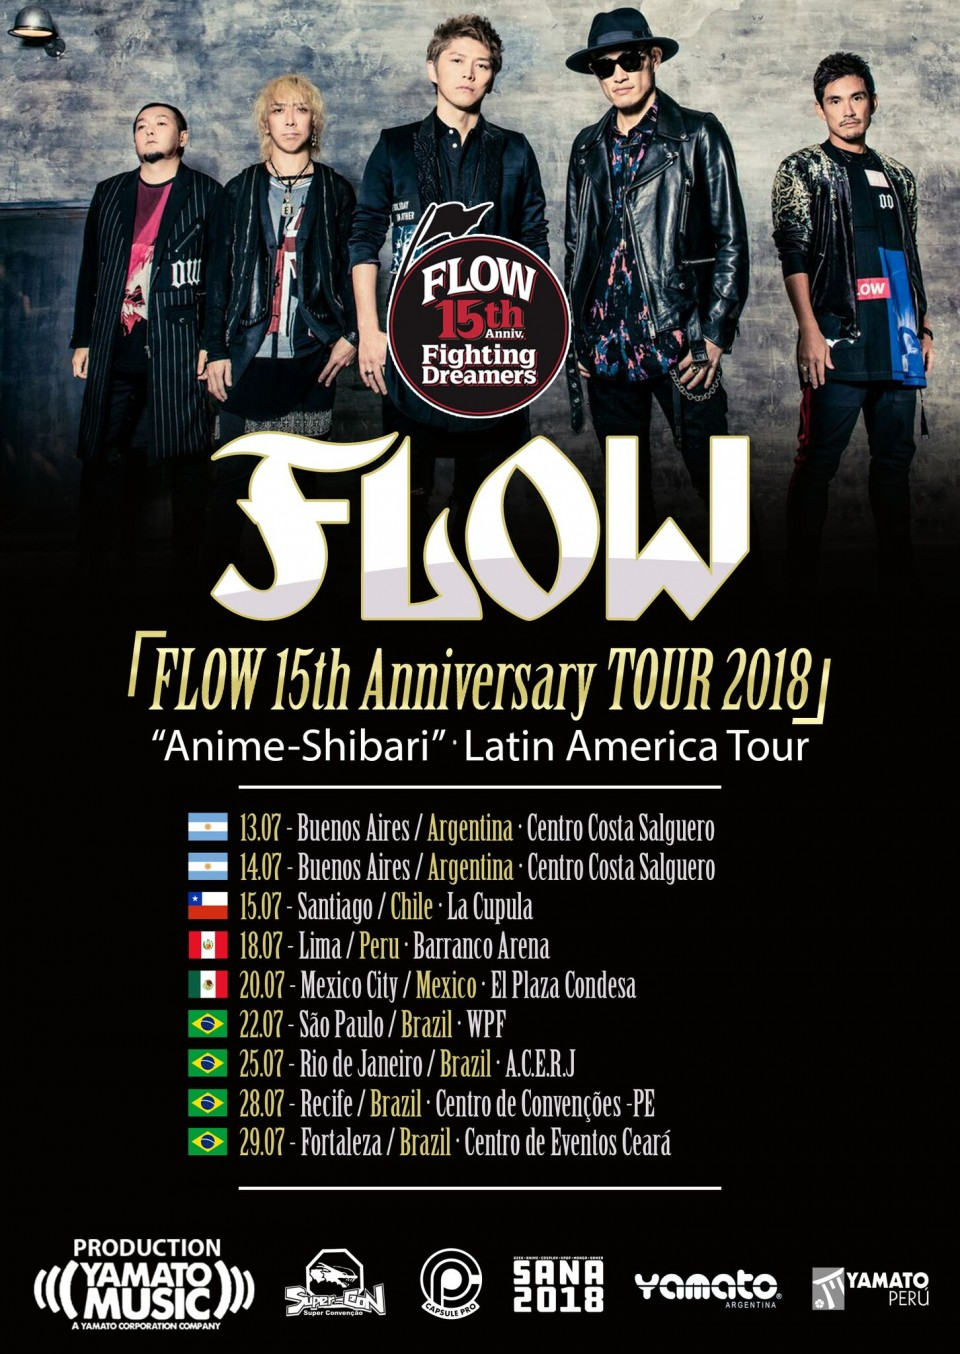 FLOW announces return to Latin America for 15th anniversary